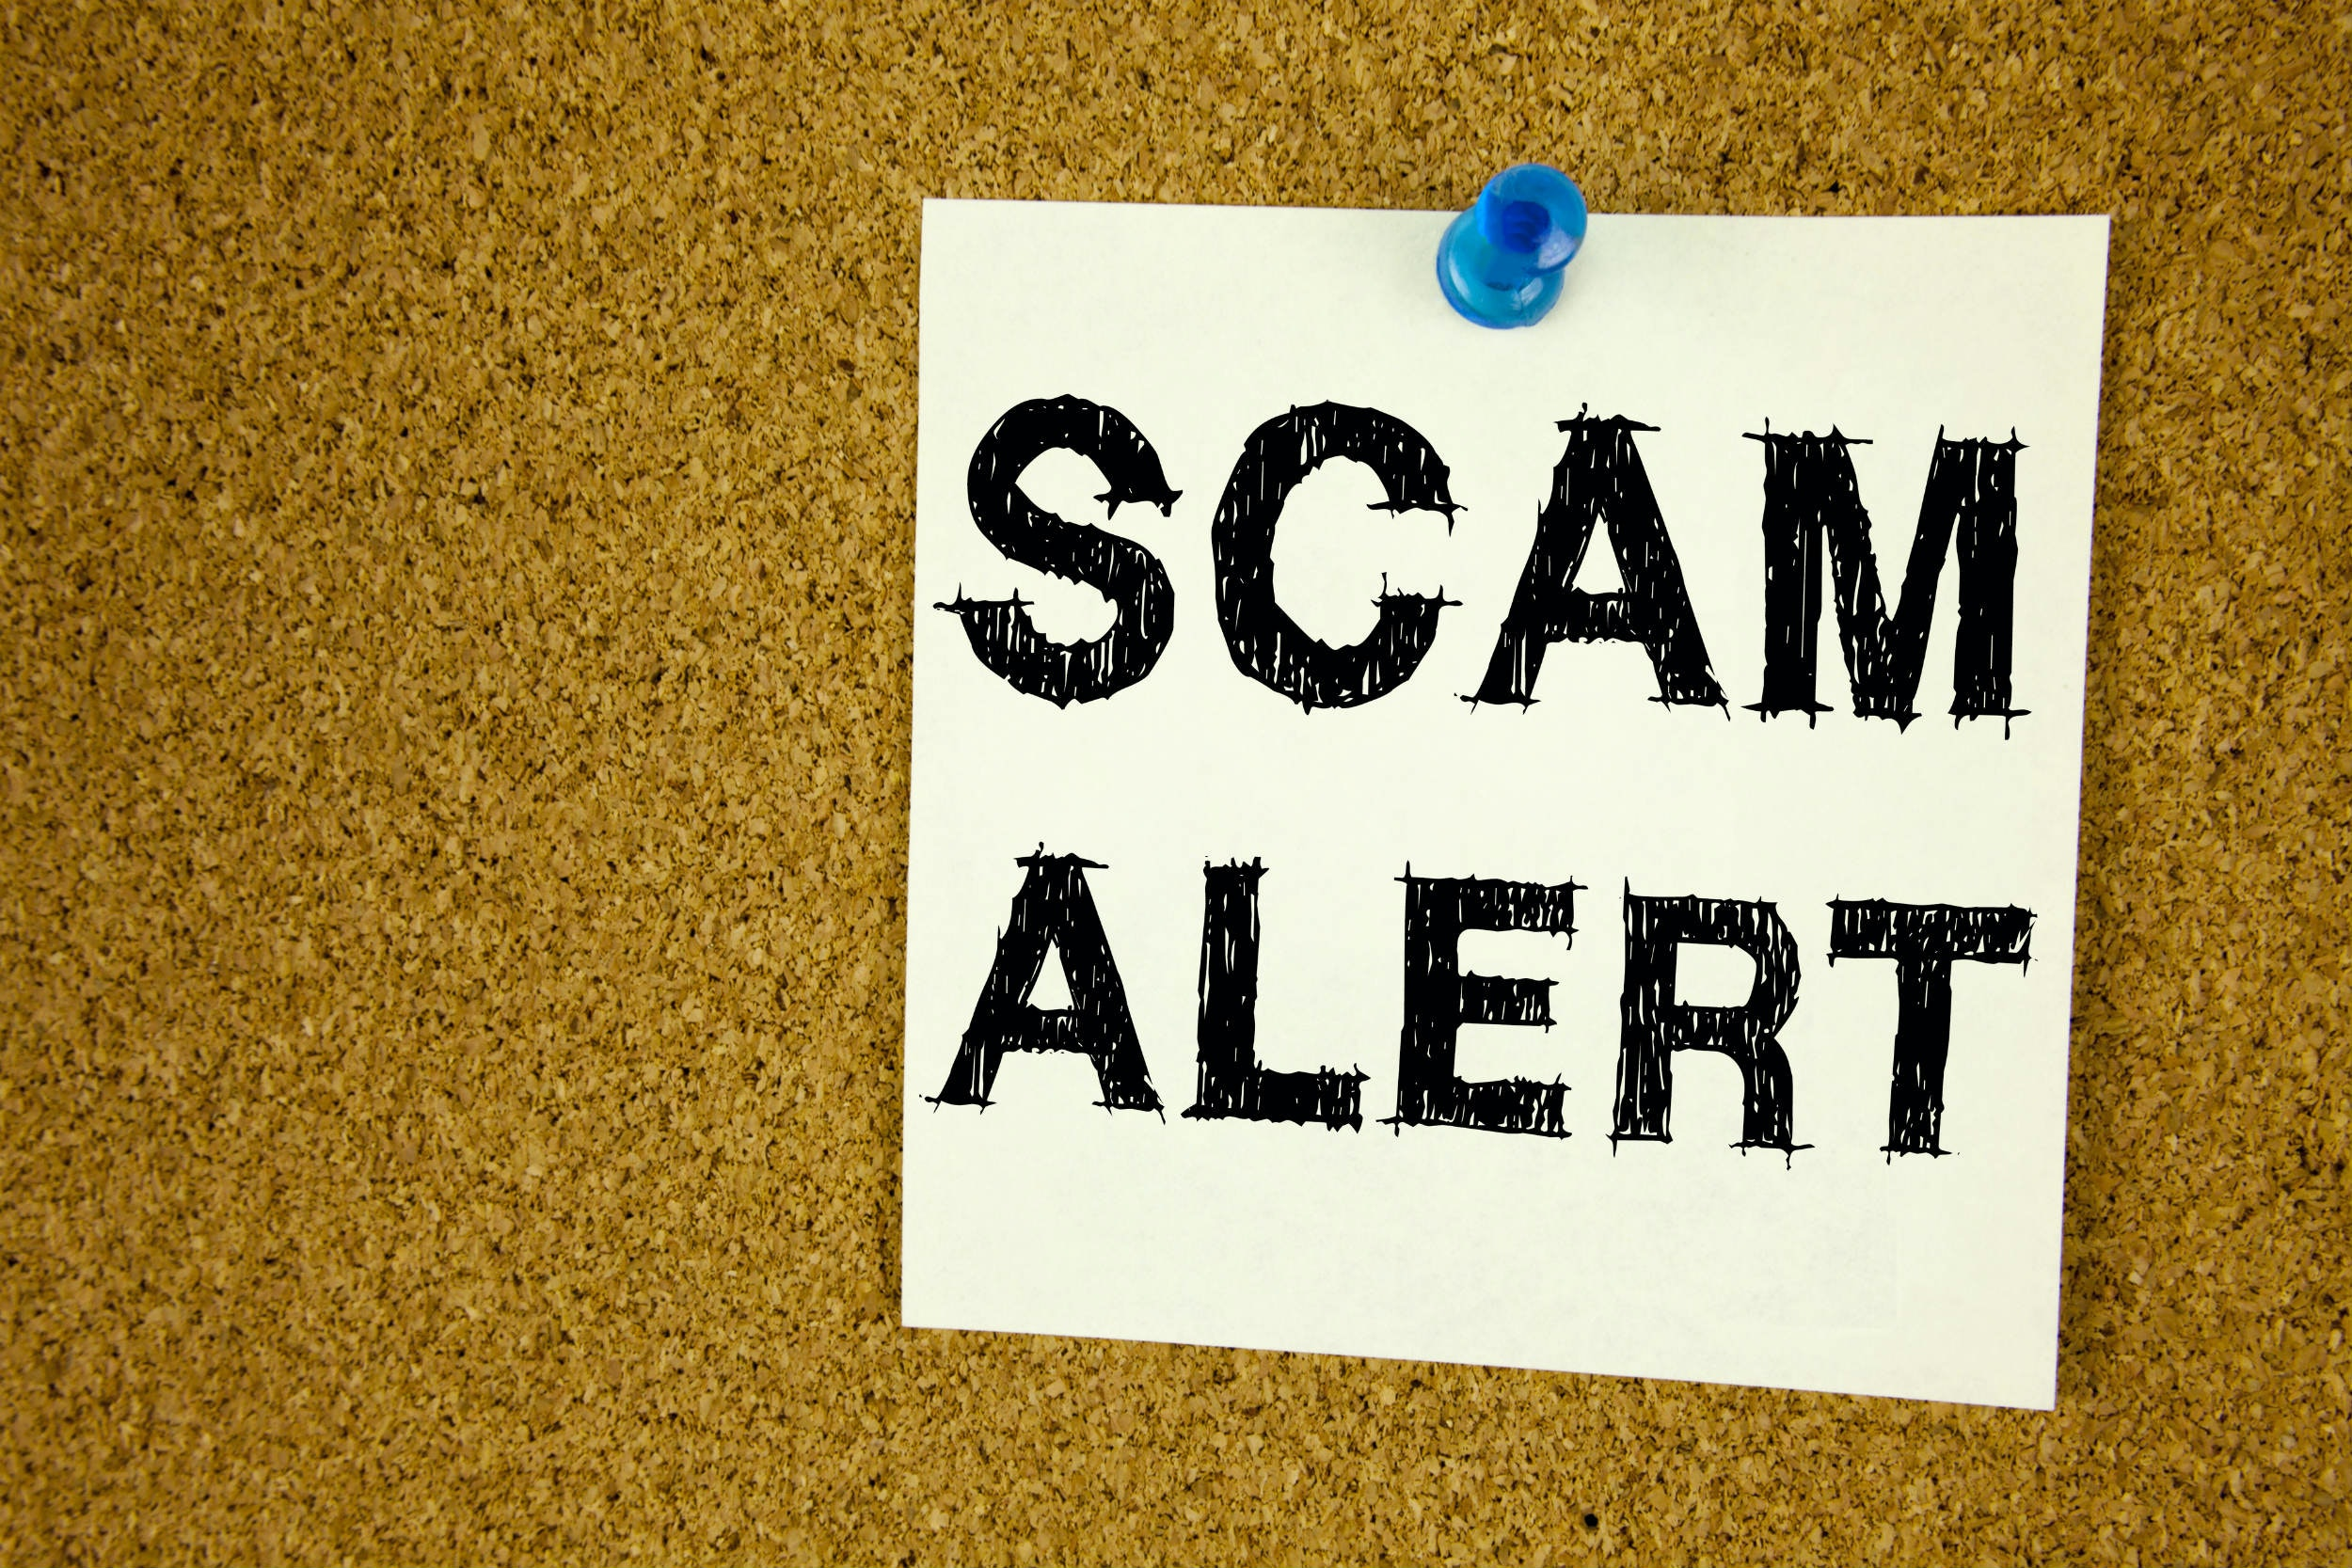 7 of the Most Common Expense Scams (and How to Stop Them)